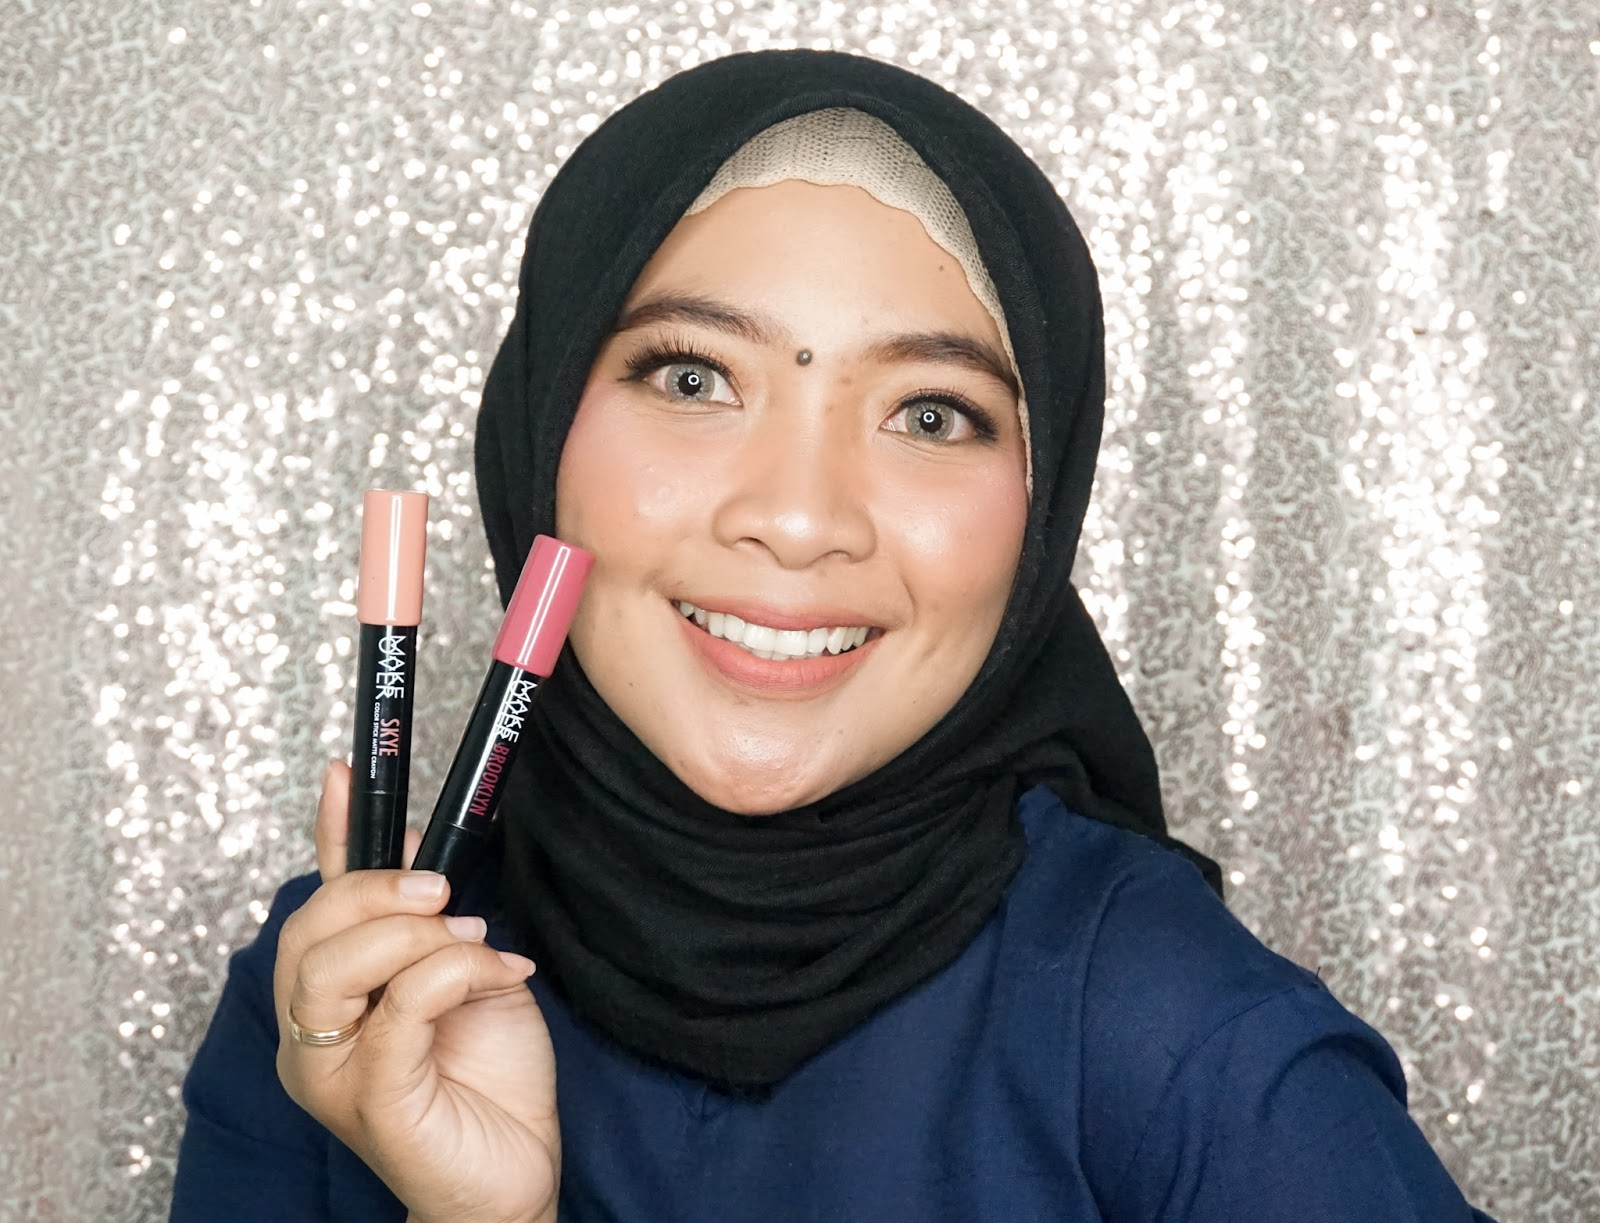 shade Ombre lips Make Over Color Stick Matte SKYE dan BROOKLYN di bibir hitam